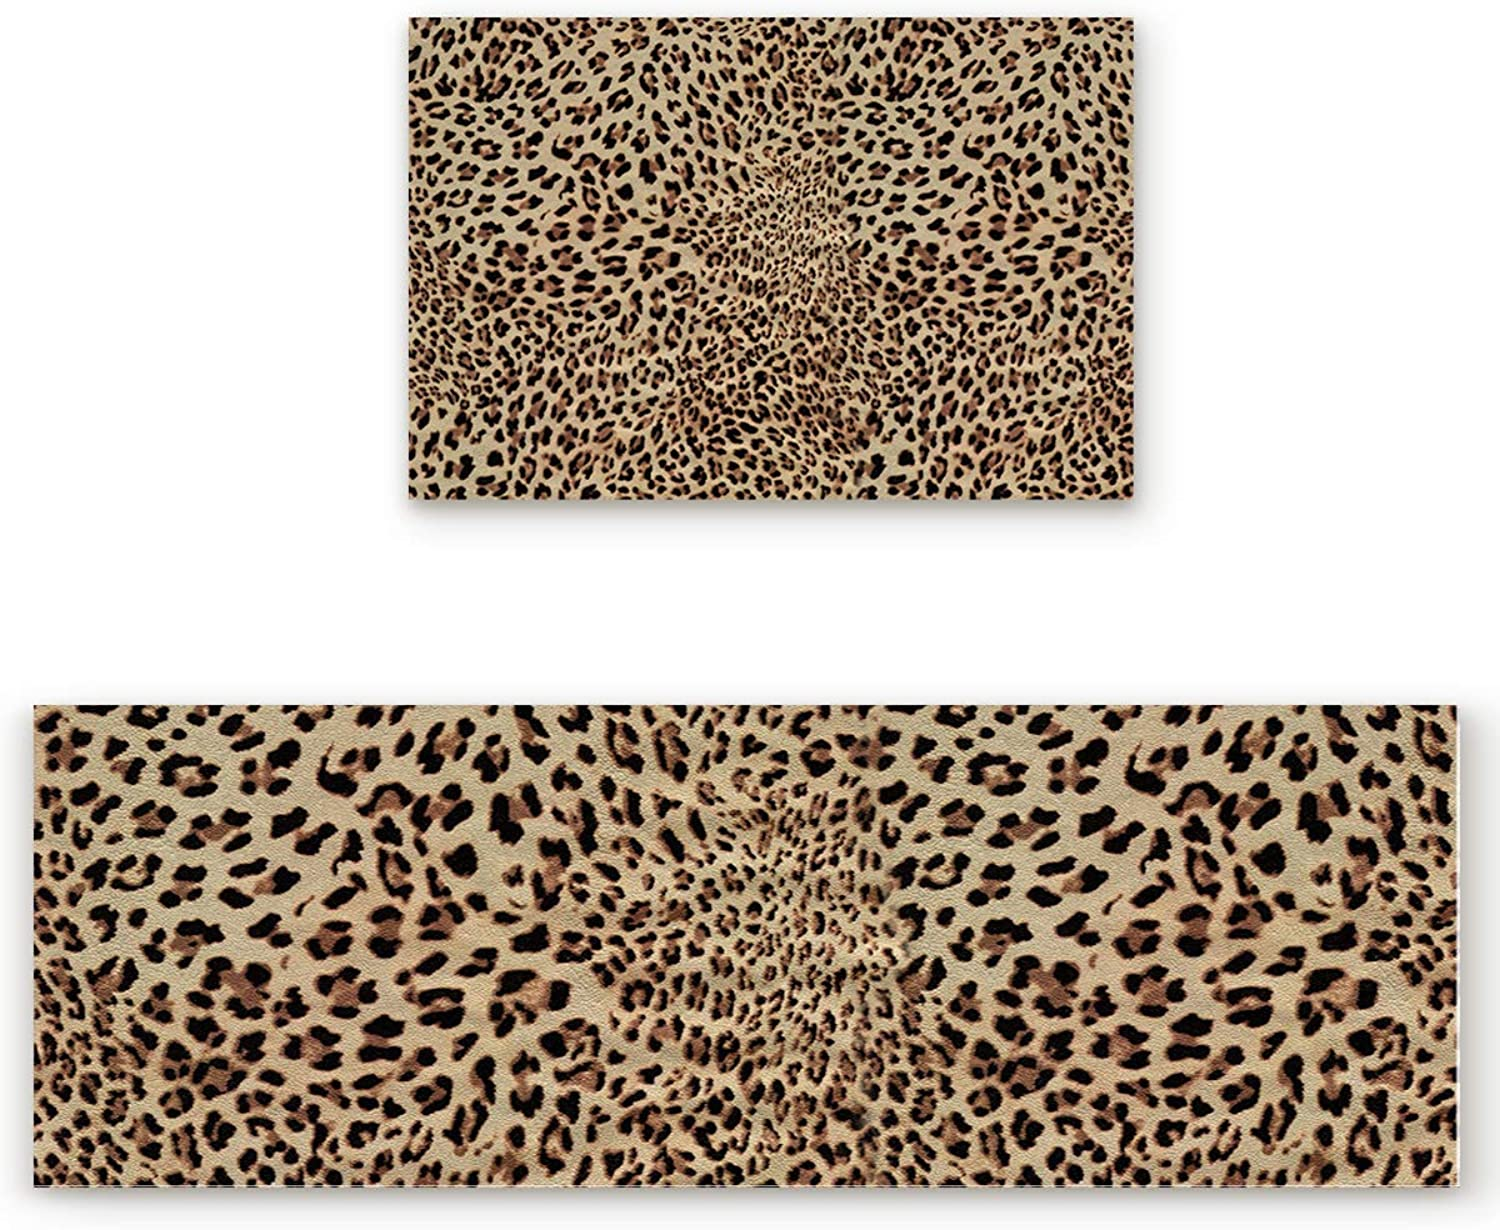 Savannan 2 Piece Non-Slip Kitchen Bathroom Entrance Mat Absorbent Durable Floor Doormat Runner Rug Set - Leopard Print